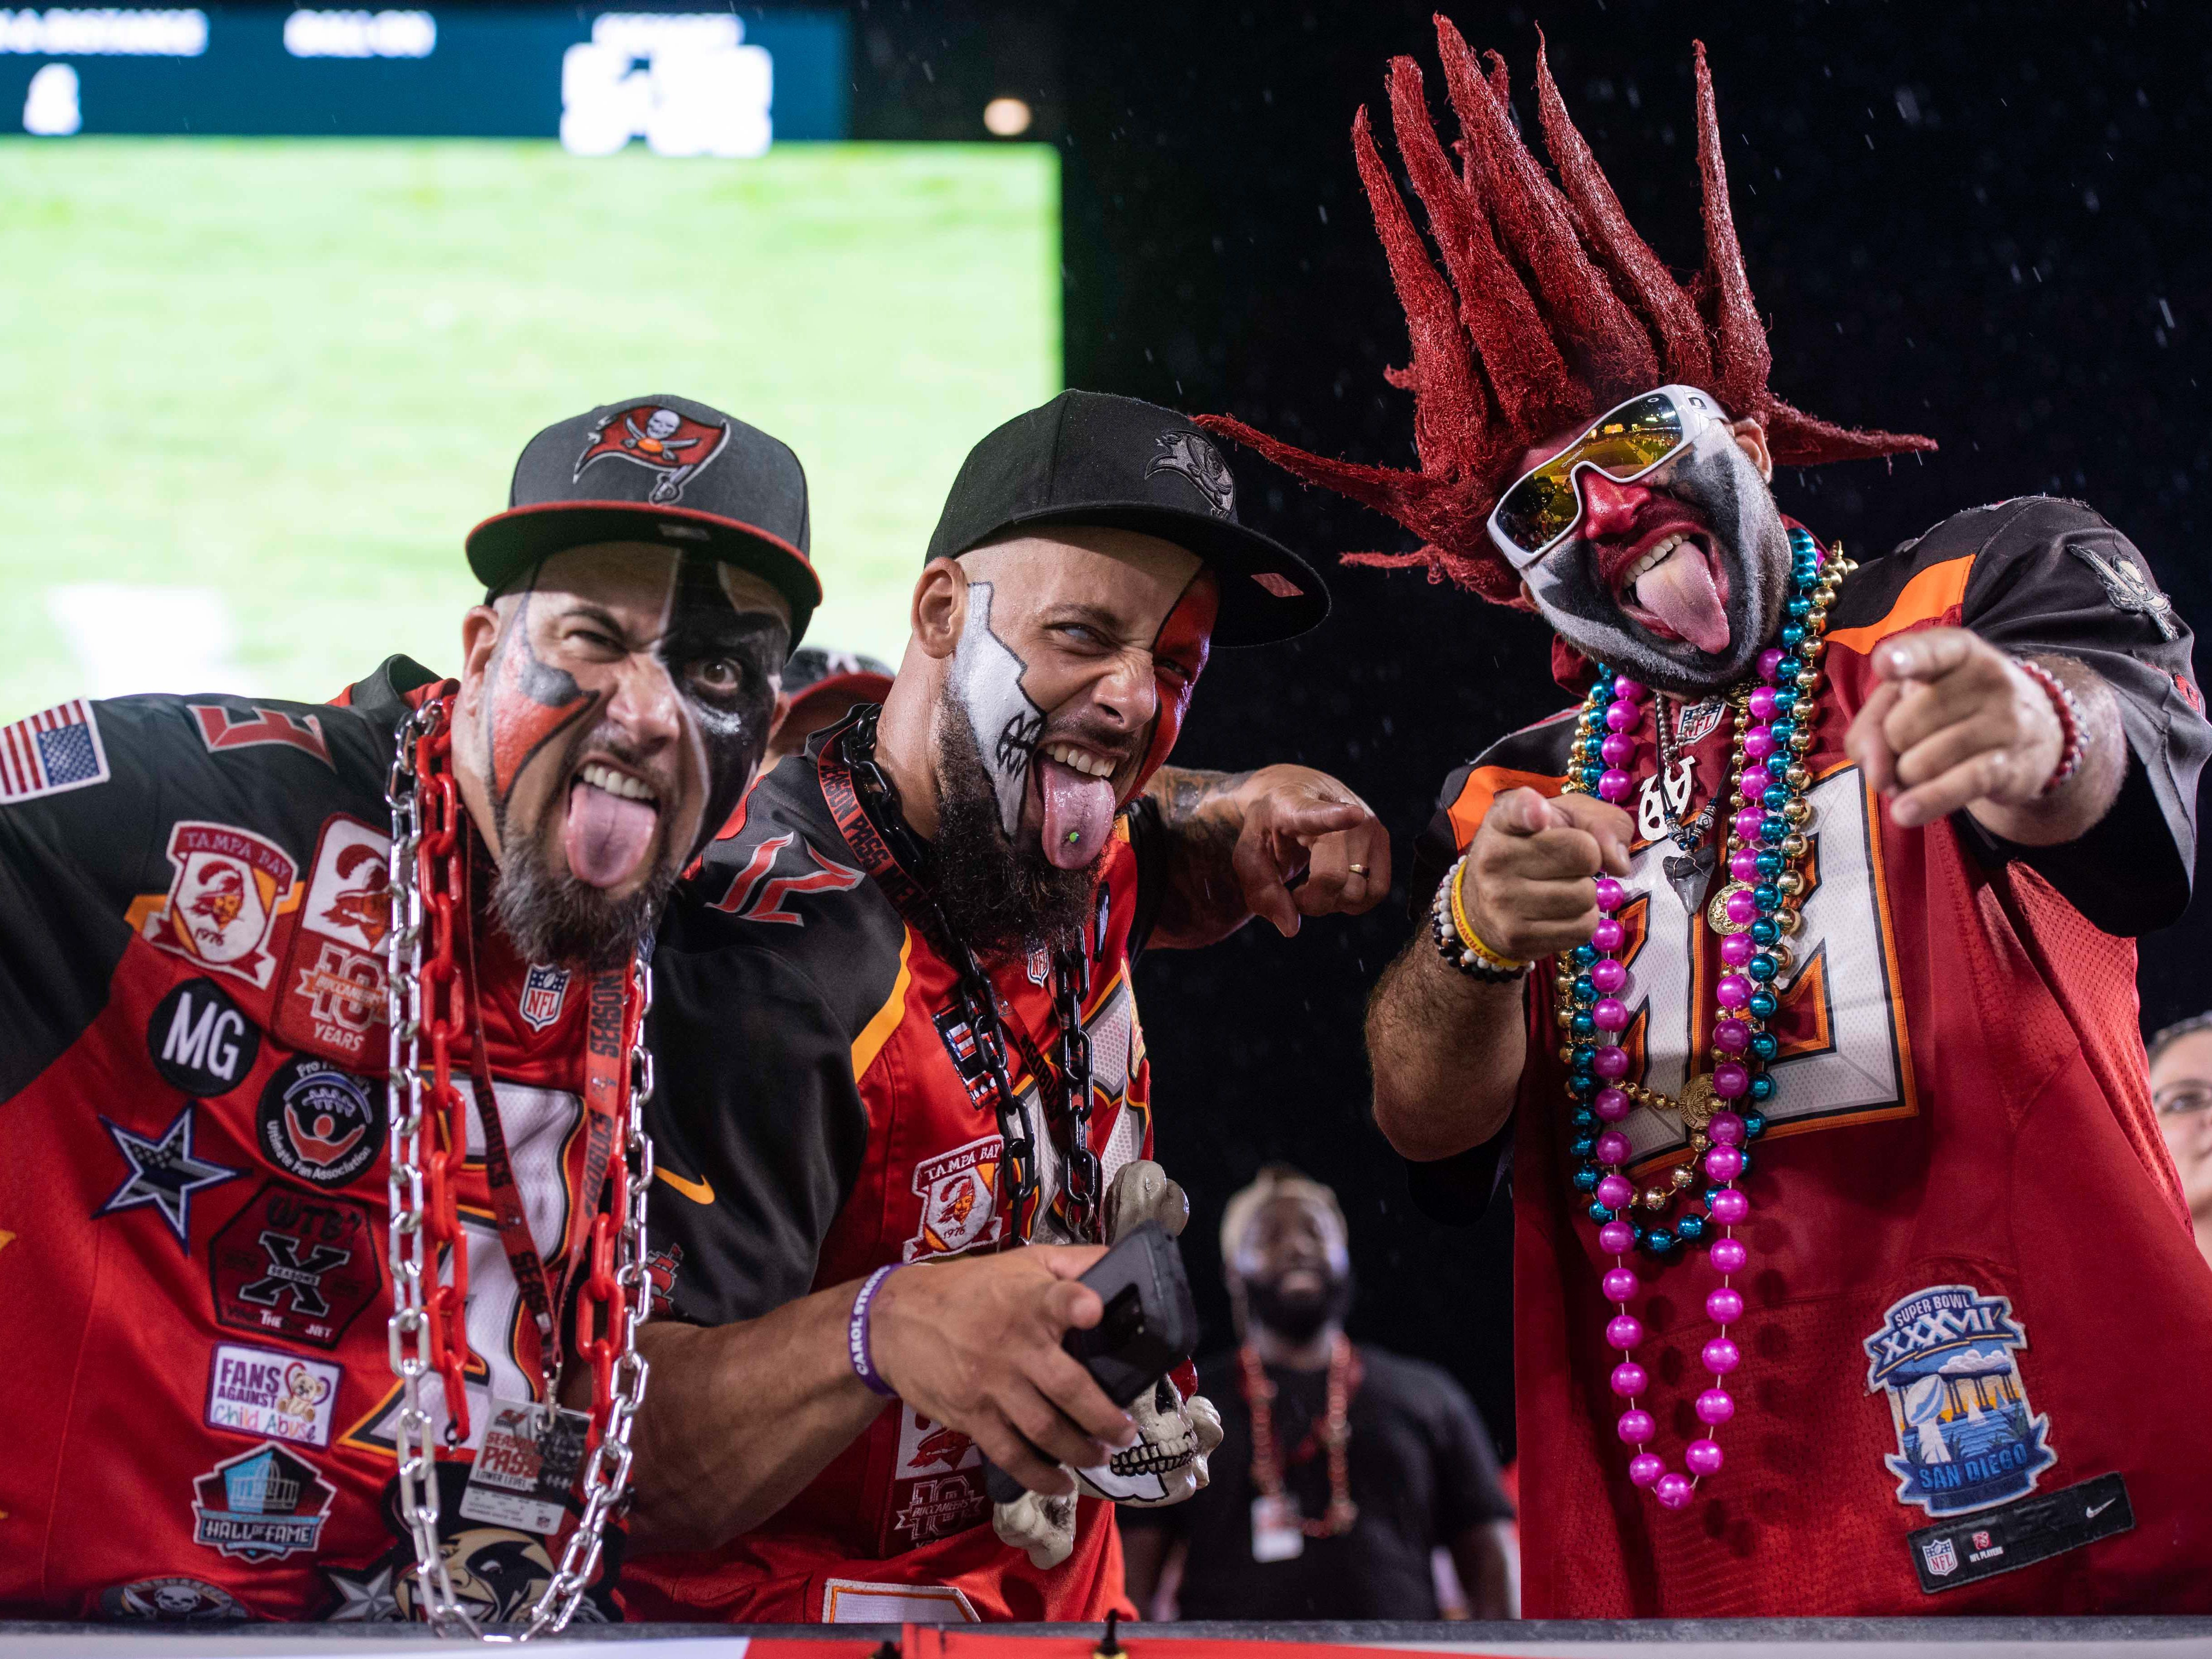 Aug 24, 2018; Tampa, FL, USA; Fans dressed in costume cheer on the Tampa Bay Buccaneers during warmups prior to the game against the Detroit Lions at Raymond James Stadium. Mandatory Credit: Douglas DeFelice-USA TODAY Sports